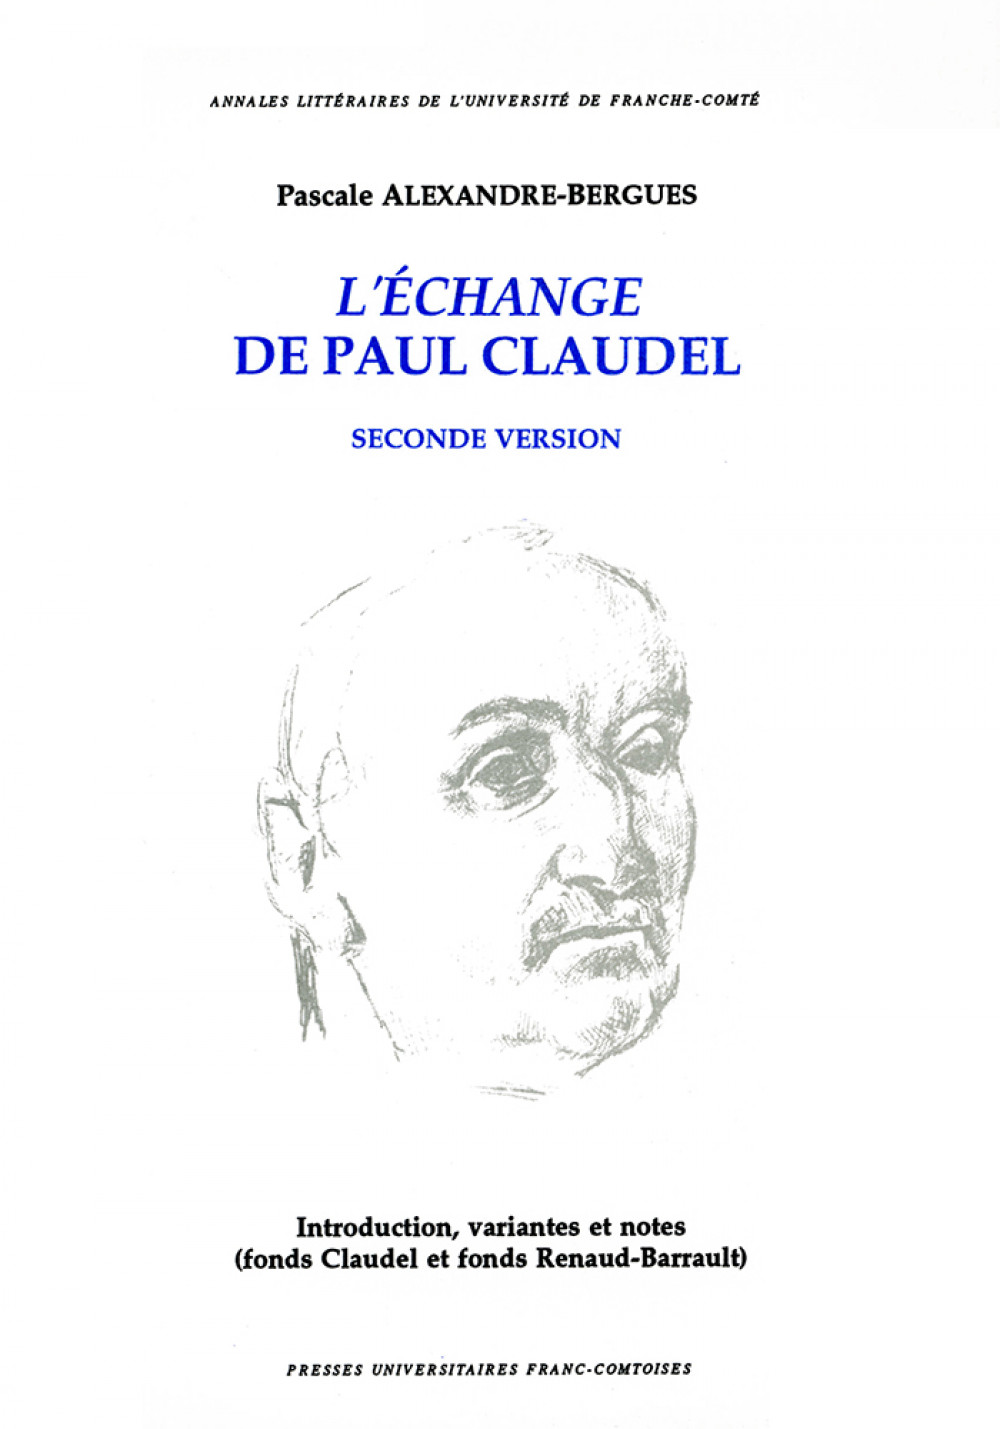 L'échange de Paul Claudel. Seconde version